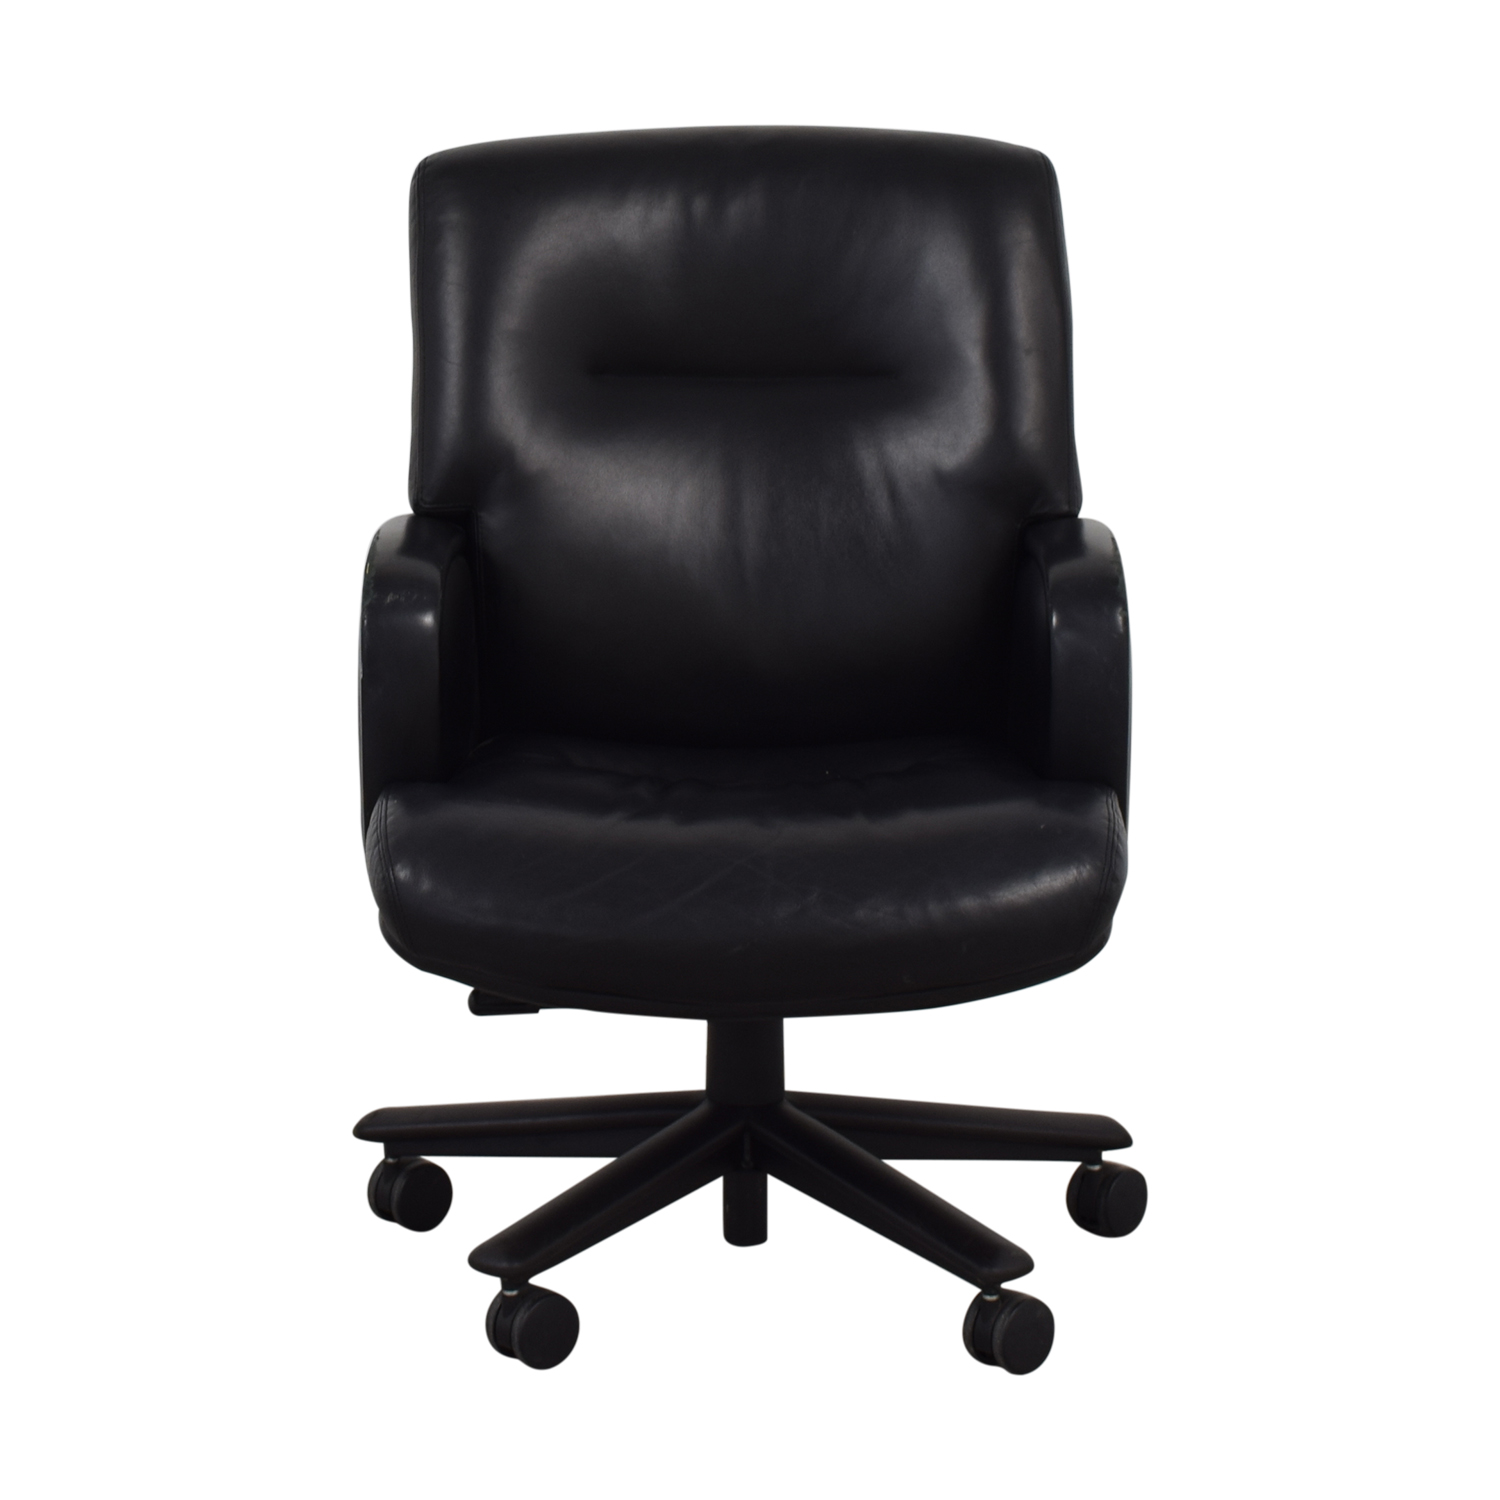 Gunlocke Company Gunlocke Company Office Chair second hand